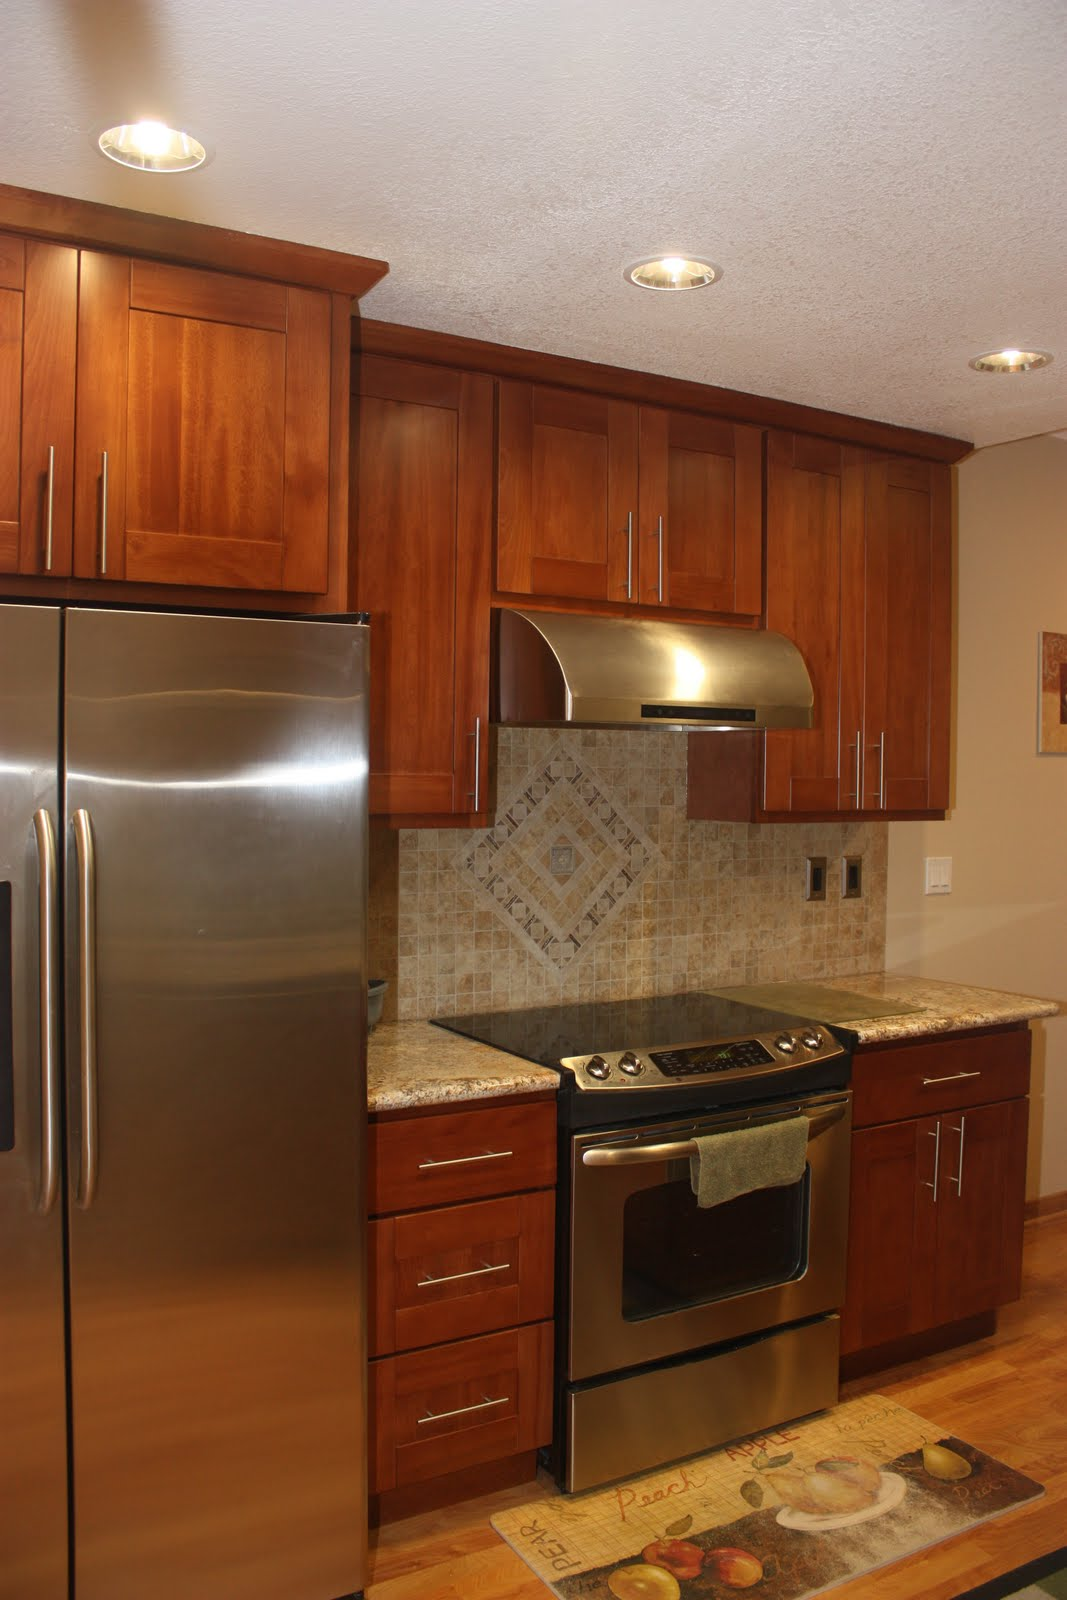 cherry shaker kitchen cabinets. Cherry Shaker Kitchen Cabinets, Rise Panel Vanity Cabinet Cabinets